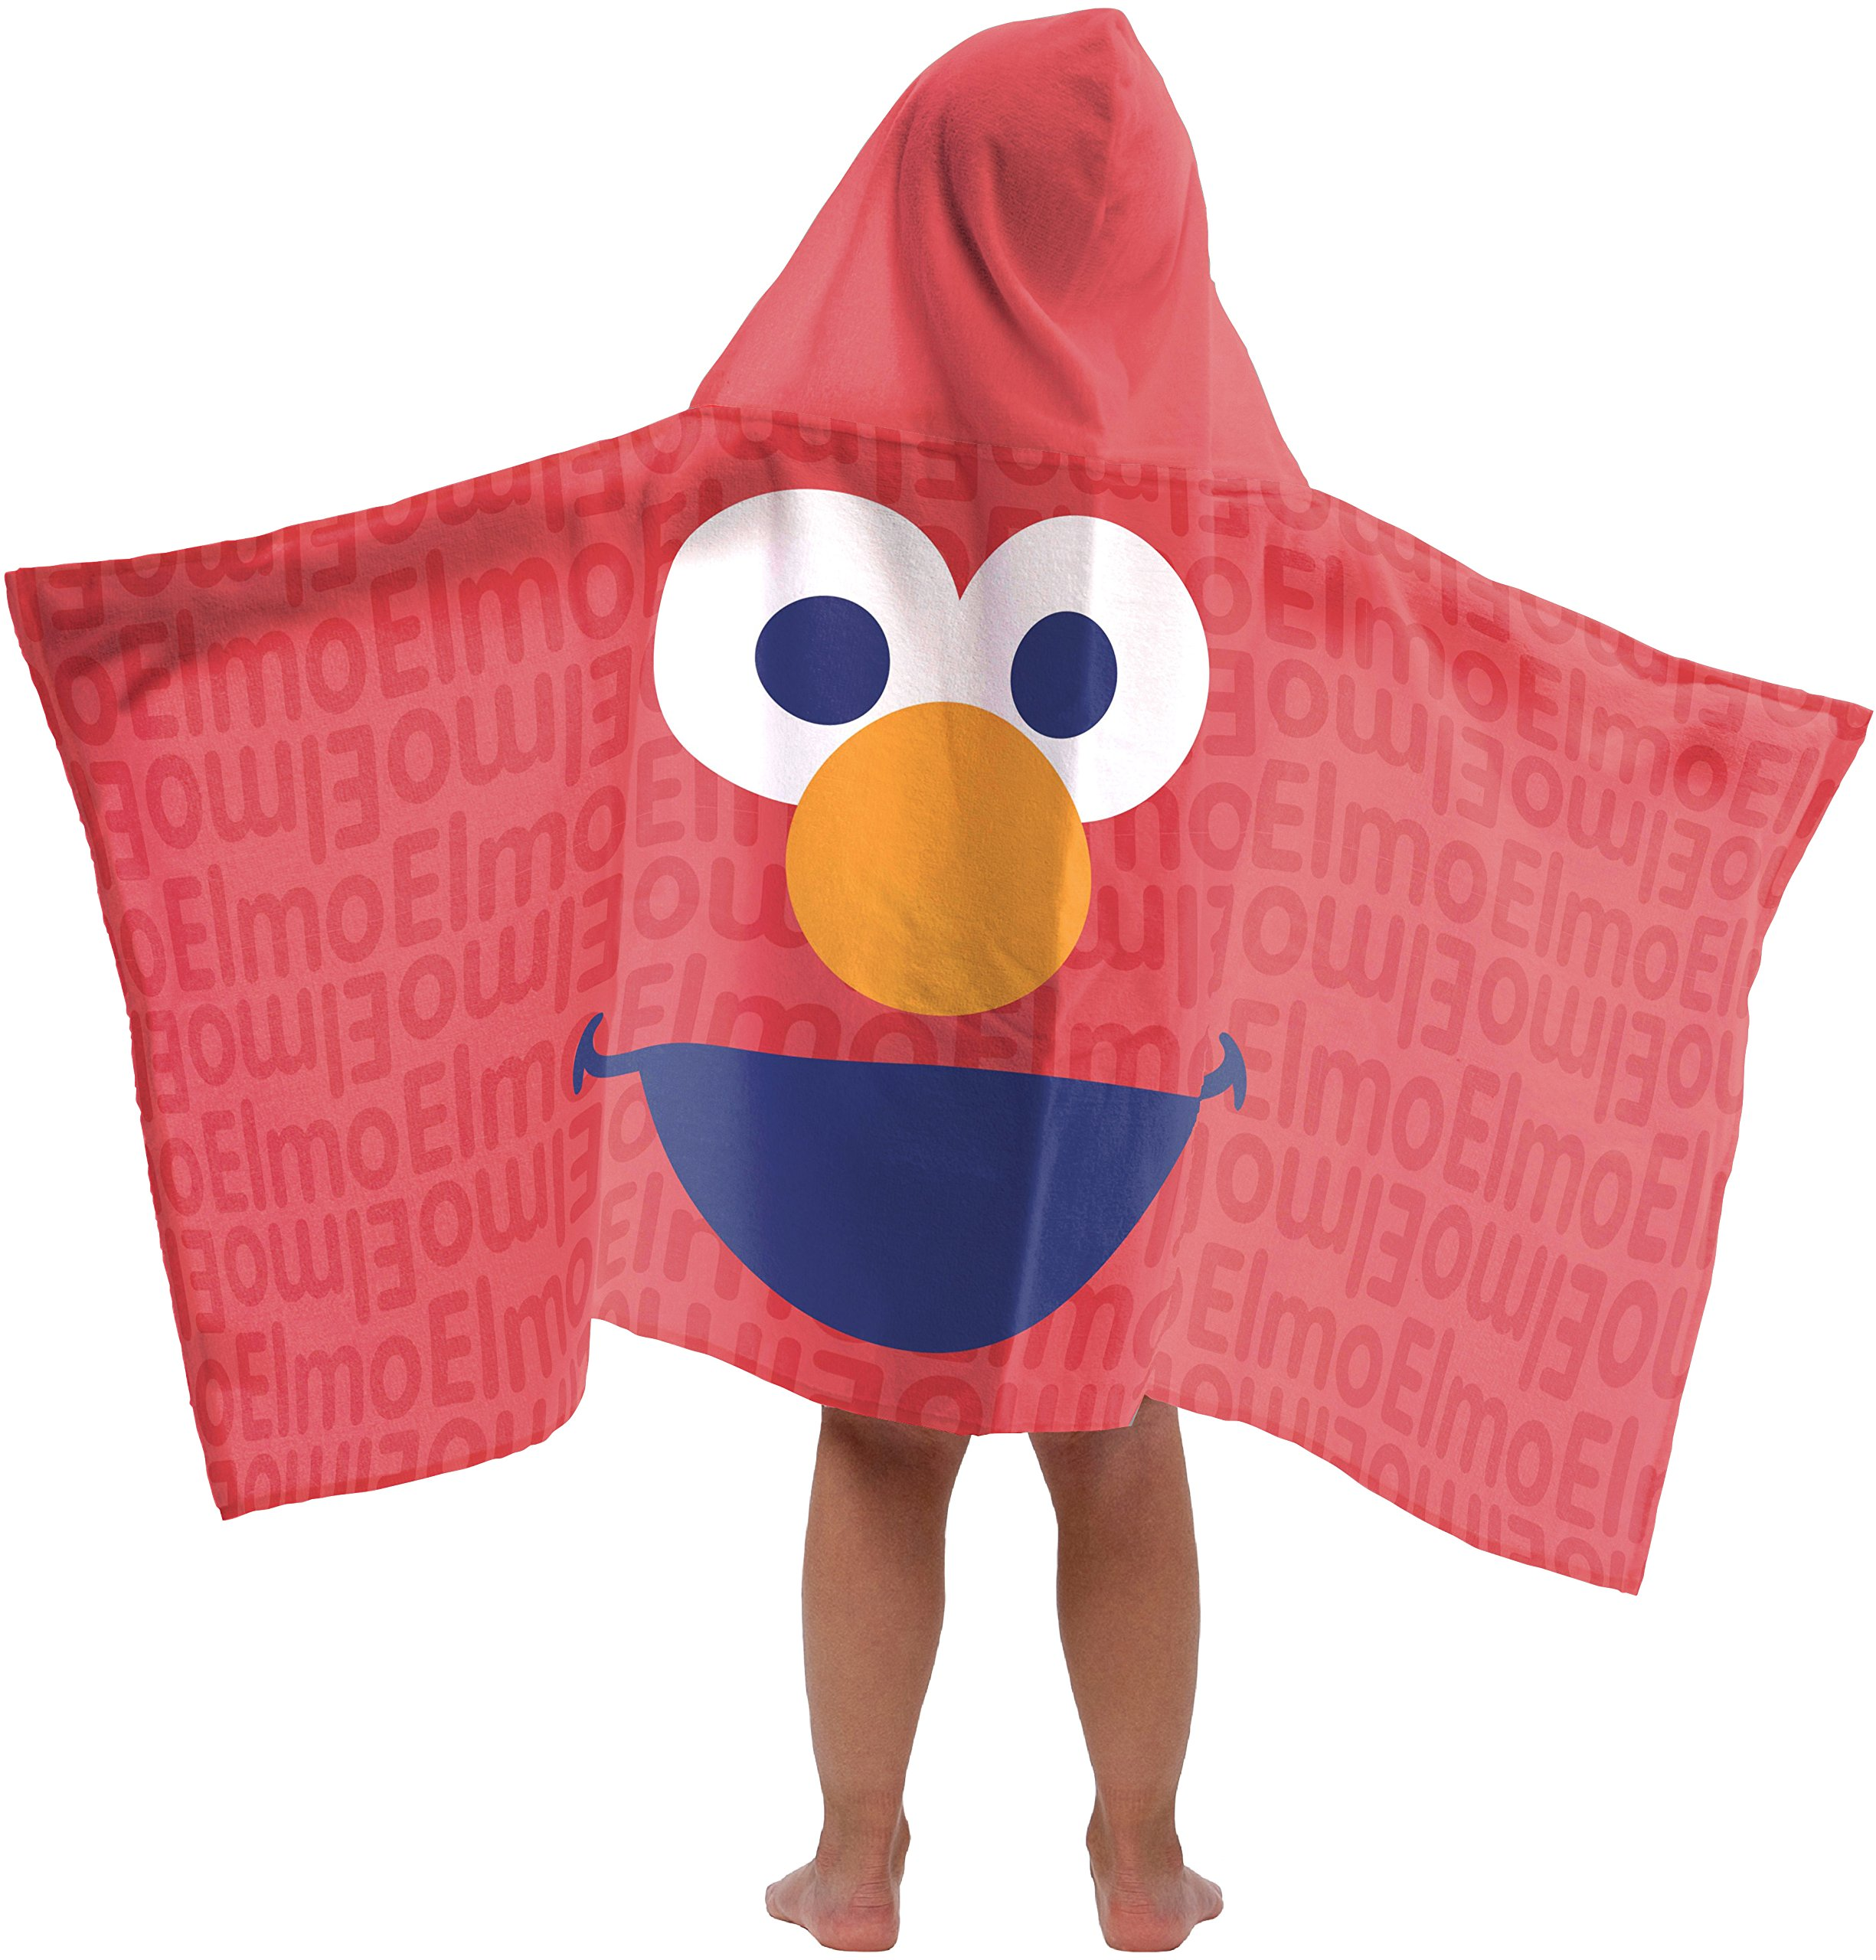 Jay Franco Sesame Street Super Soft & Absorbent Kids Hooded Bath/Pool/Beach Towel, Featuring Elmo - Fade Resistant Cotton Terry Towel, 22.5'' Inch x 51'' Inch (Official Sesame Street Product)